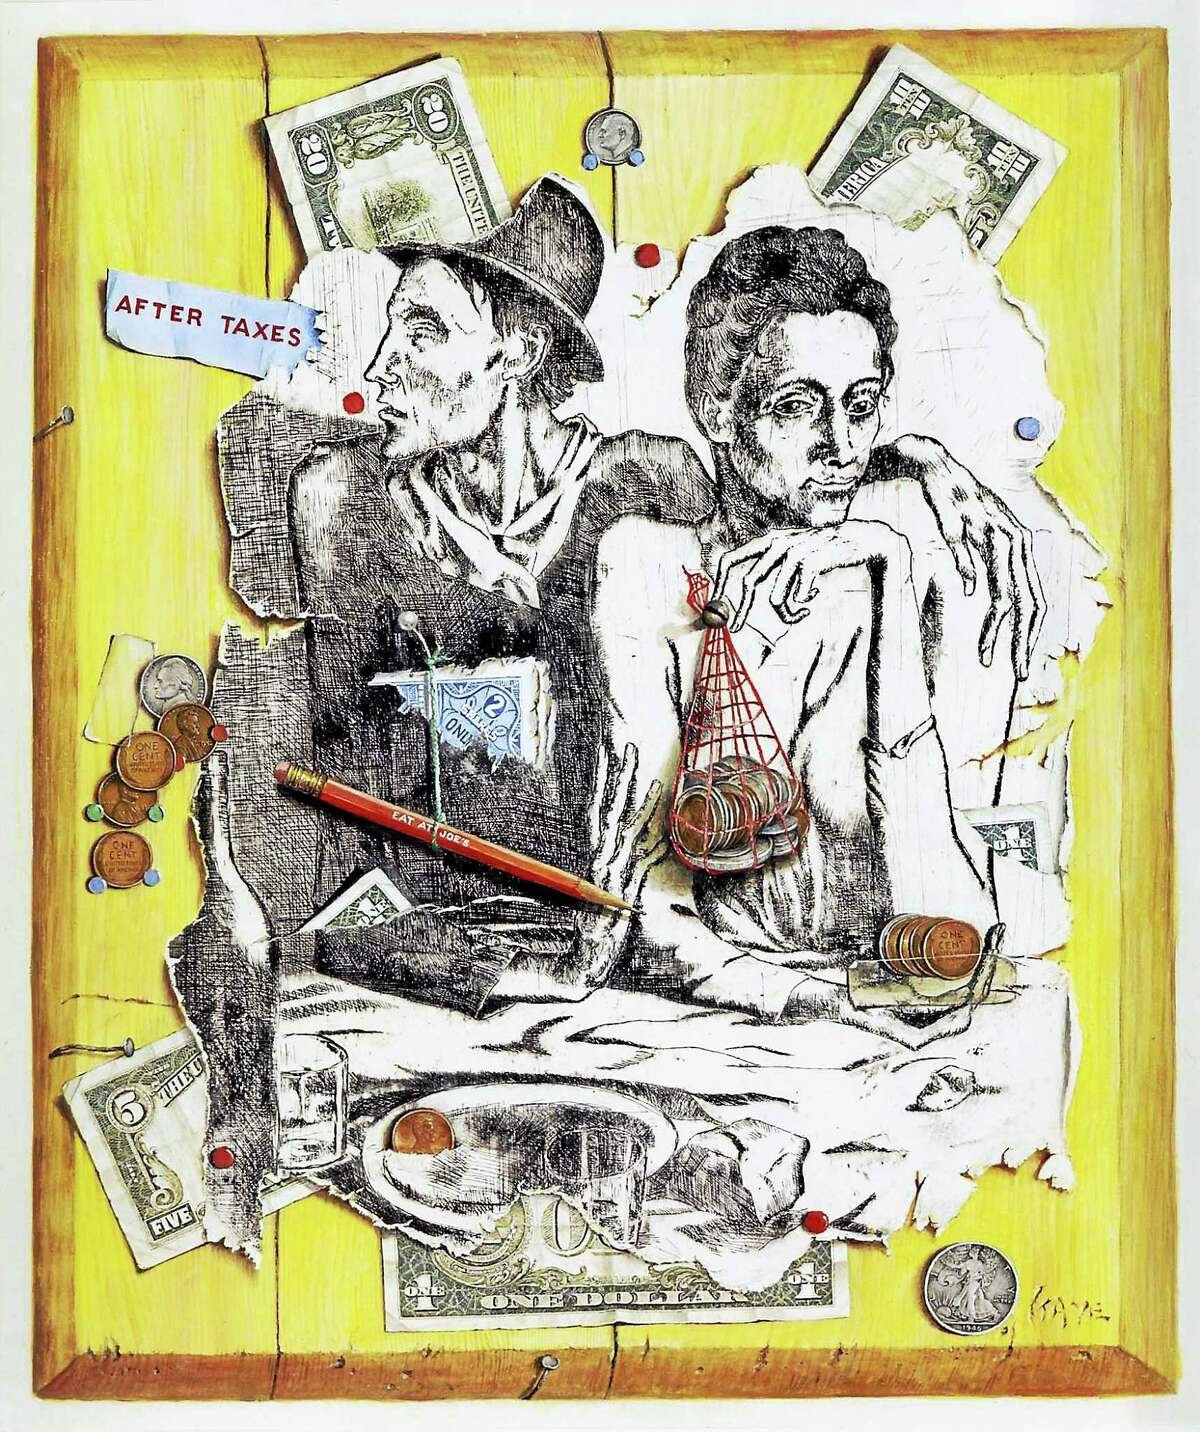 Contributed photos Otis Kaye, After Taxes, 1956, Etching and gouache on paper, 18 x 15 in., Collection of the Board of Governors of the Federal Reserve System, Gift of Rachel and Nathan Young.